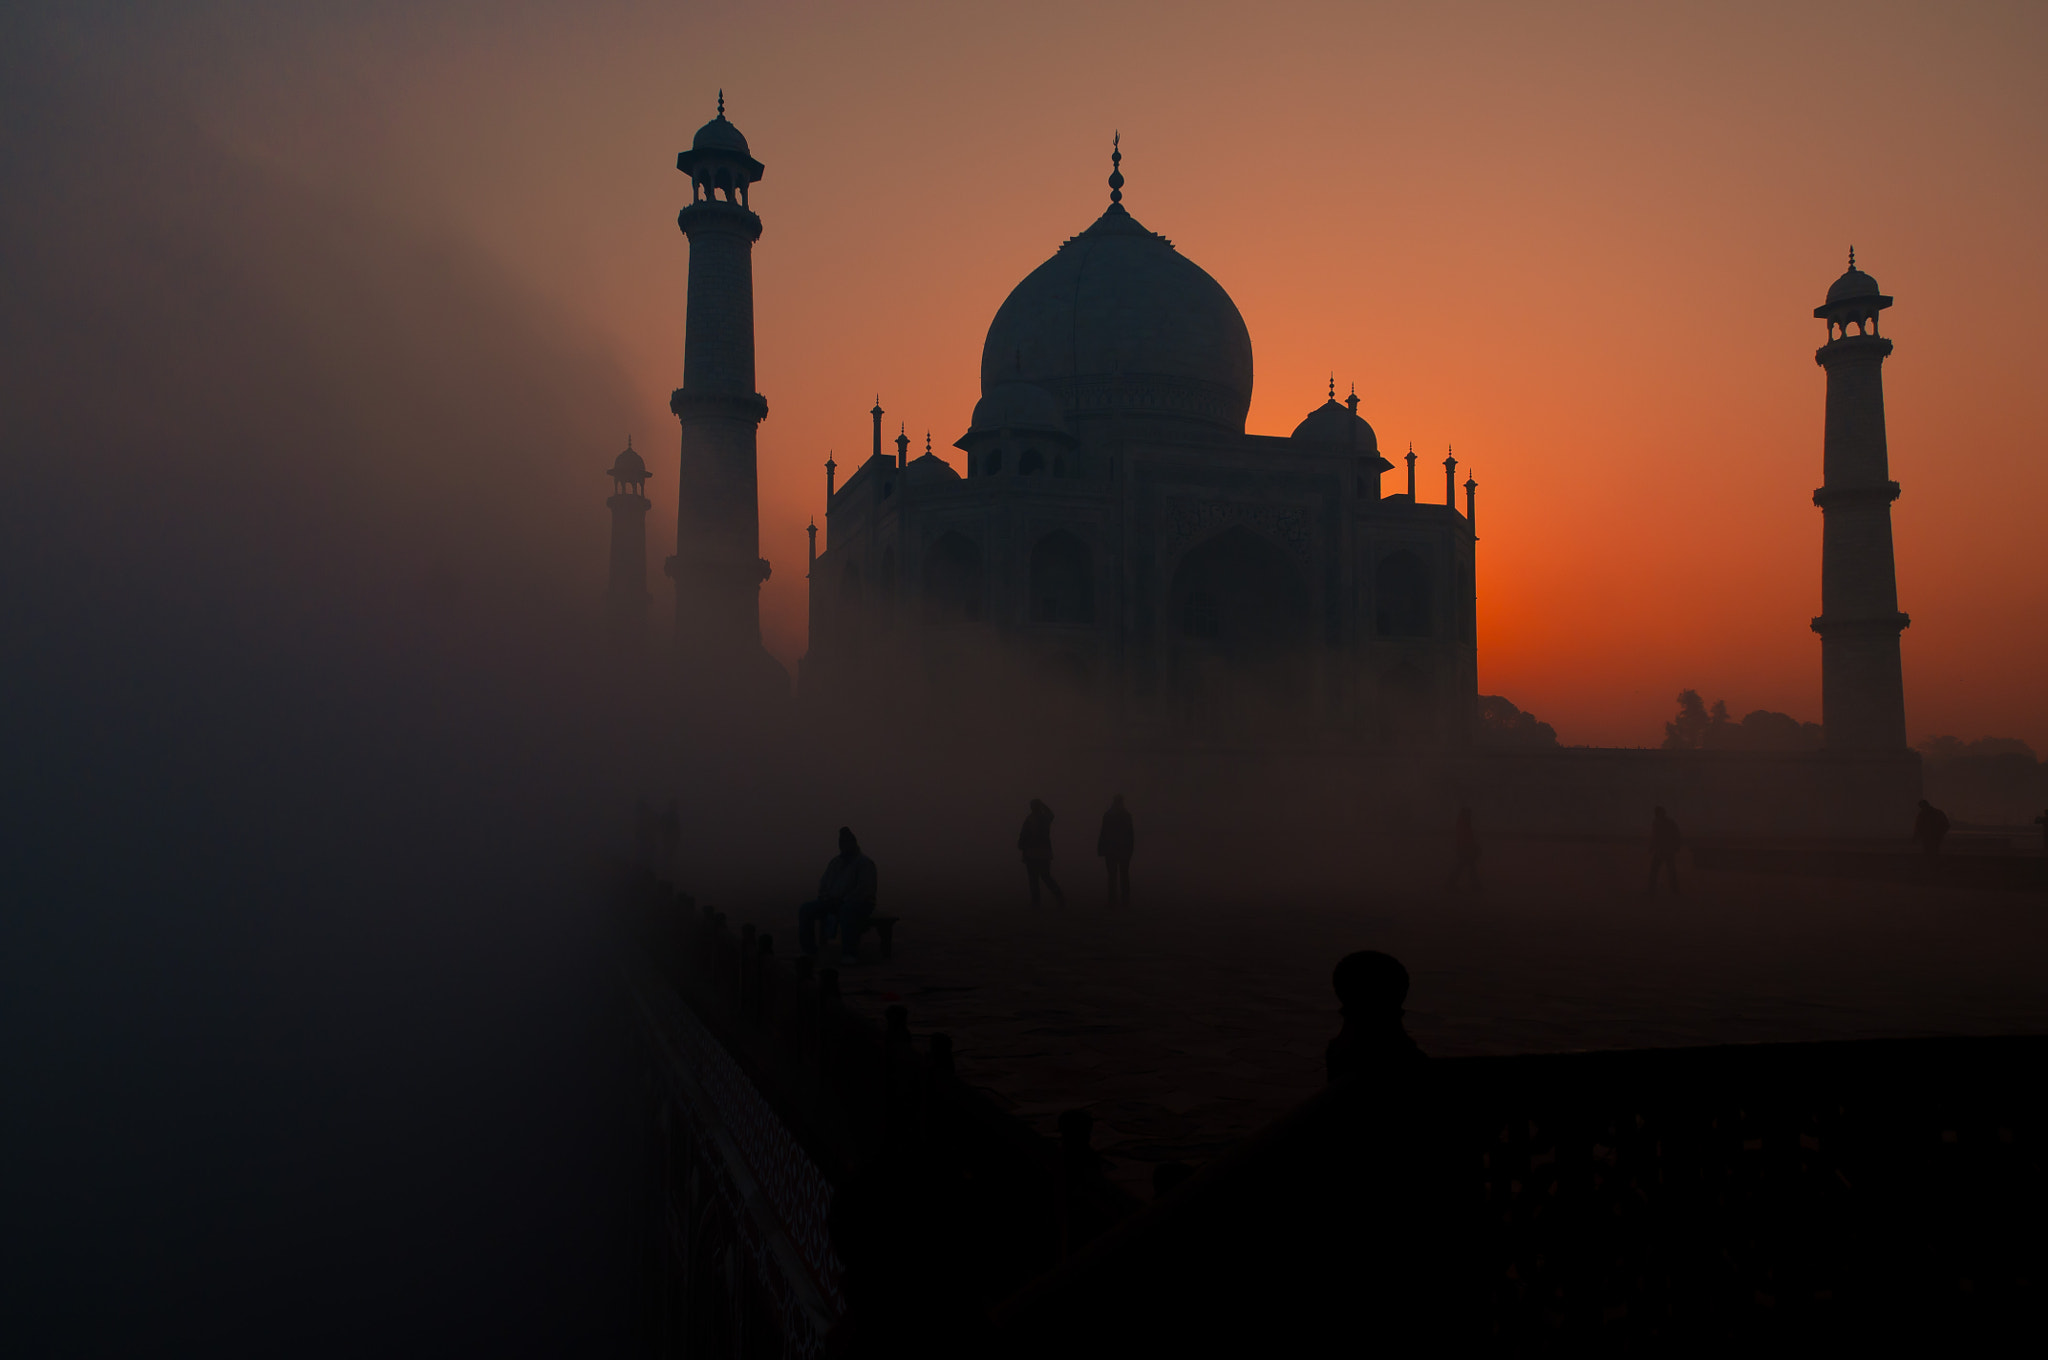 Photograph Taj Mahal At Sunrise by Hemant Shukla on 500px